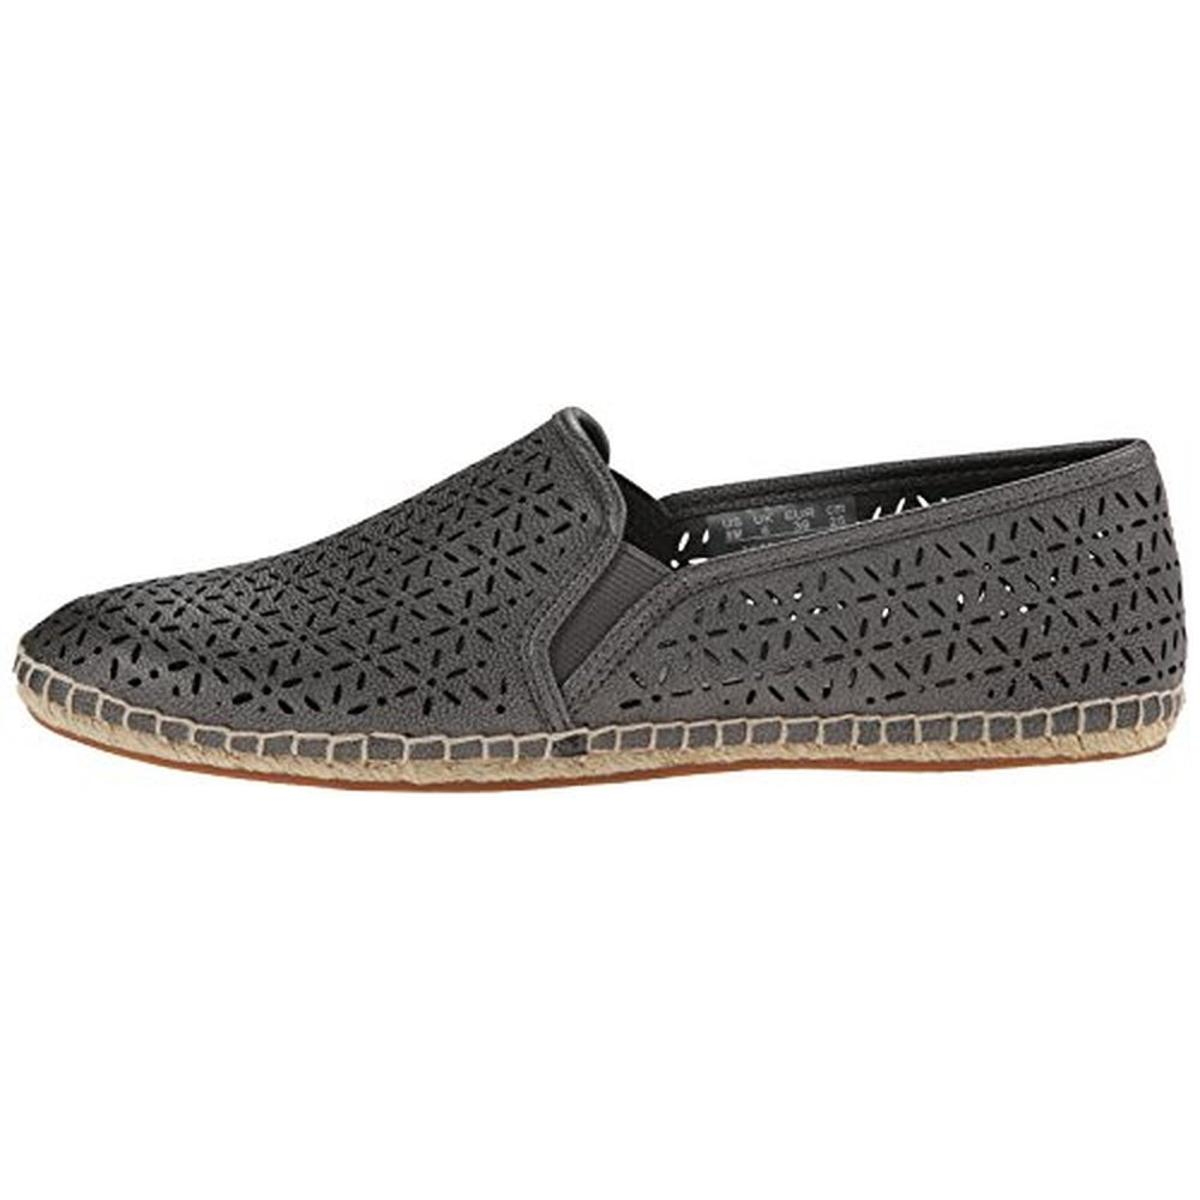 lifestride 0489 womens jaden cut out slip on espadrilles